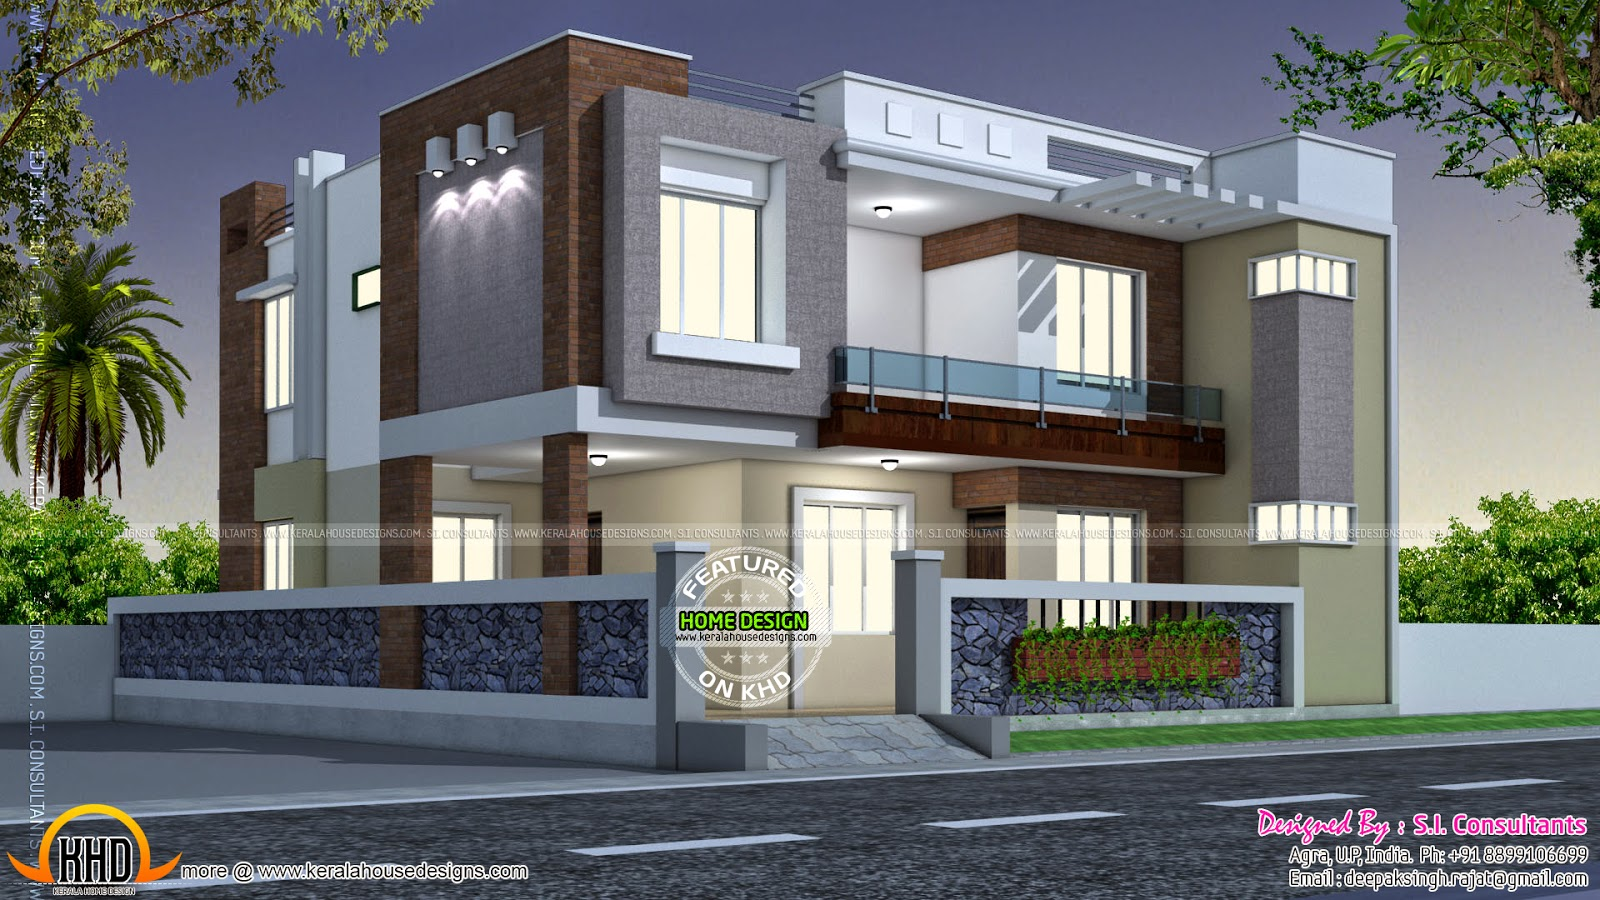 Modern indian home design front view joy studio design Indian house front design photo